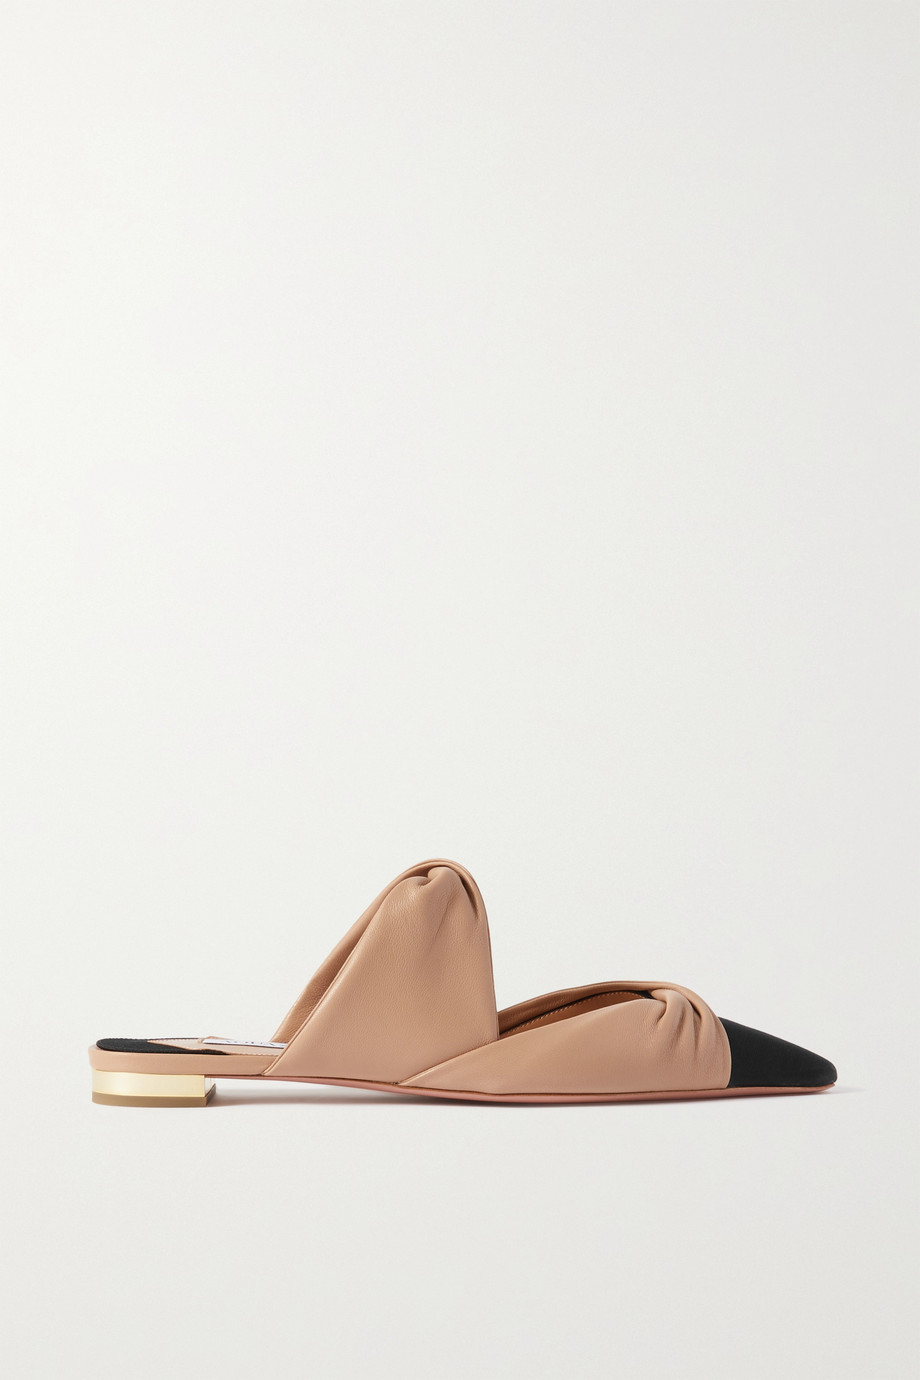 Aquazzura Twist faille-trimmed leather mules